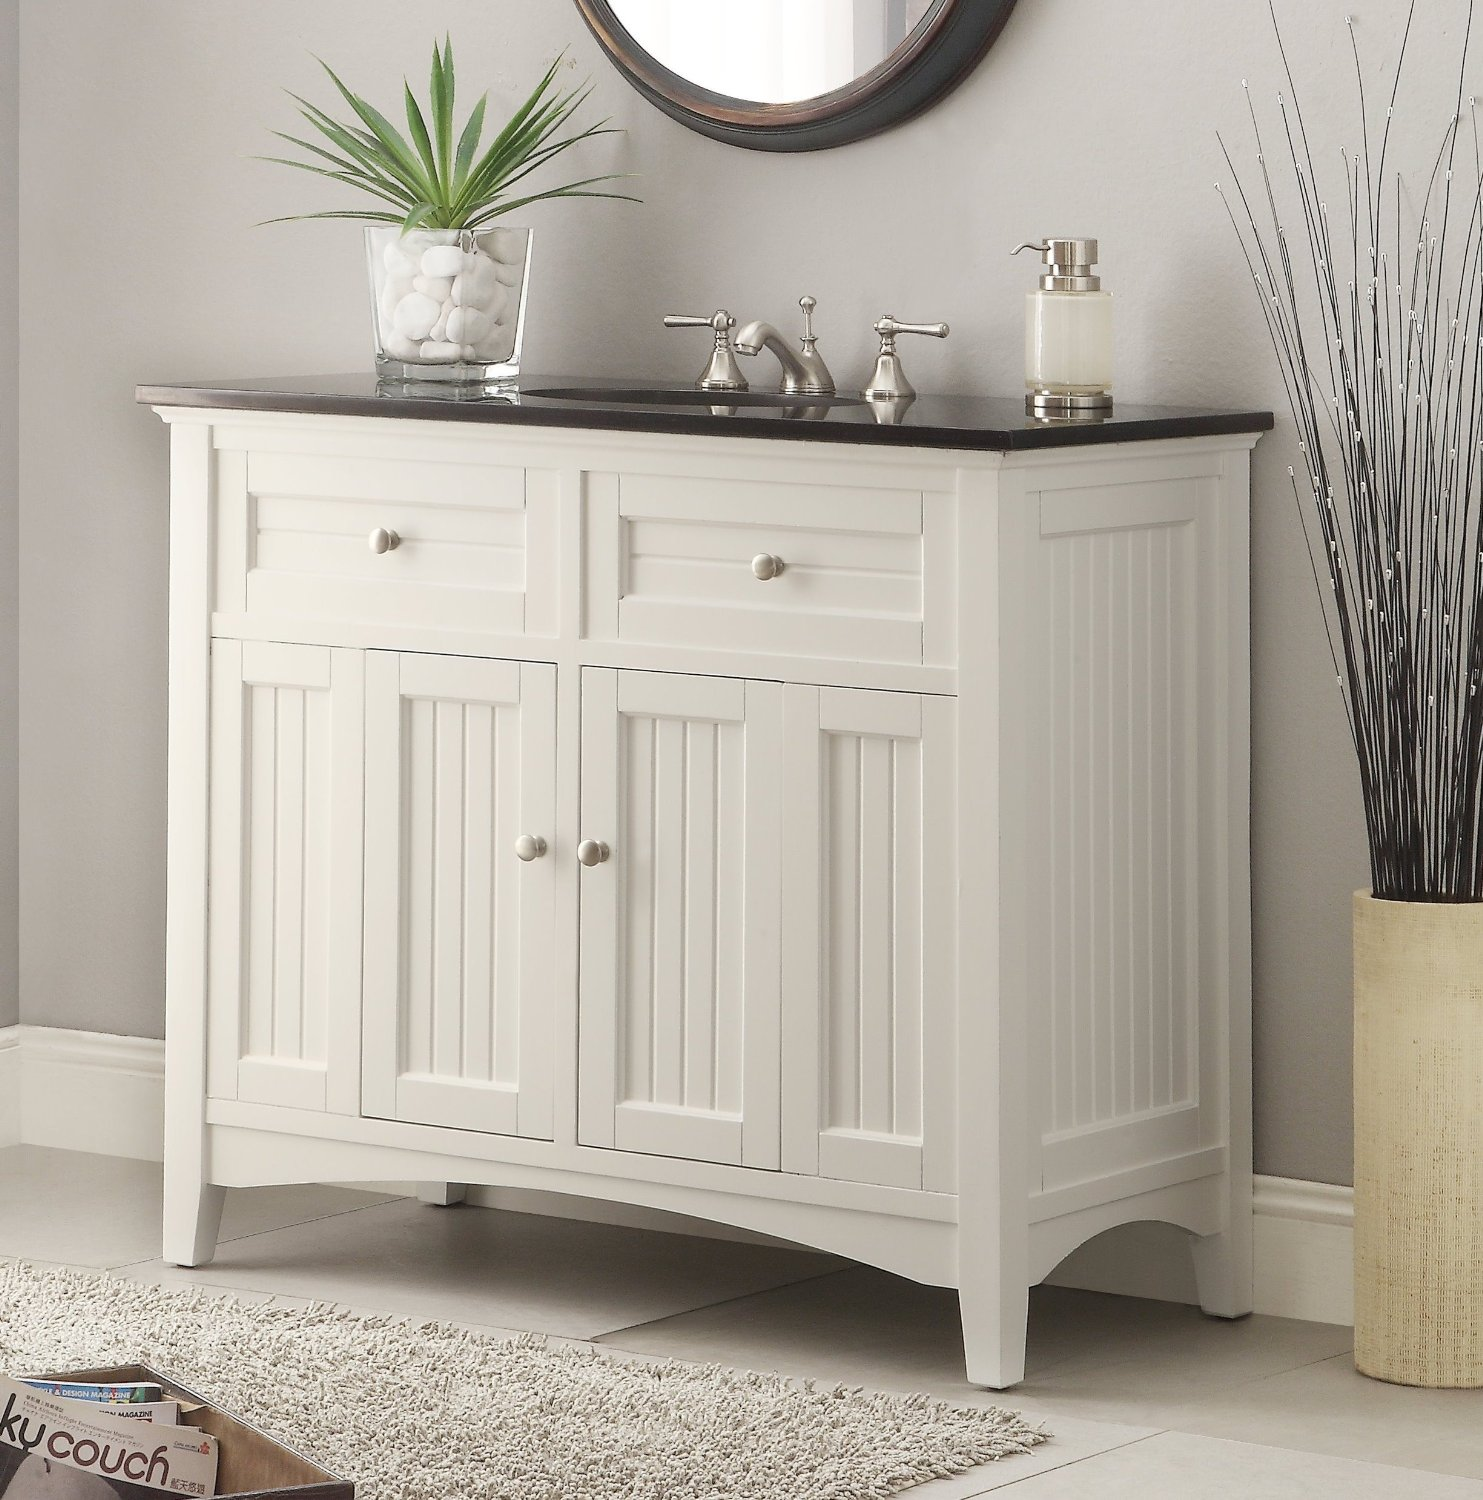 Adelina 42 inch Antique White Sink Bathroom Vanity ... - Adelina 48.75†Inch Antique White Sink Bathroom Vanity, Black